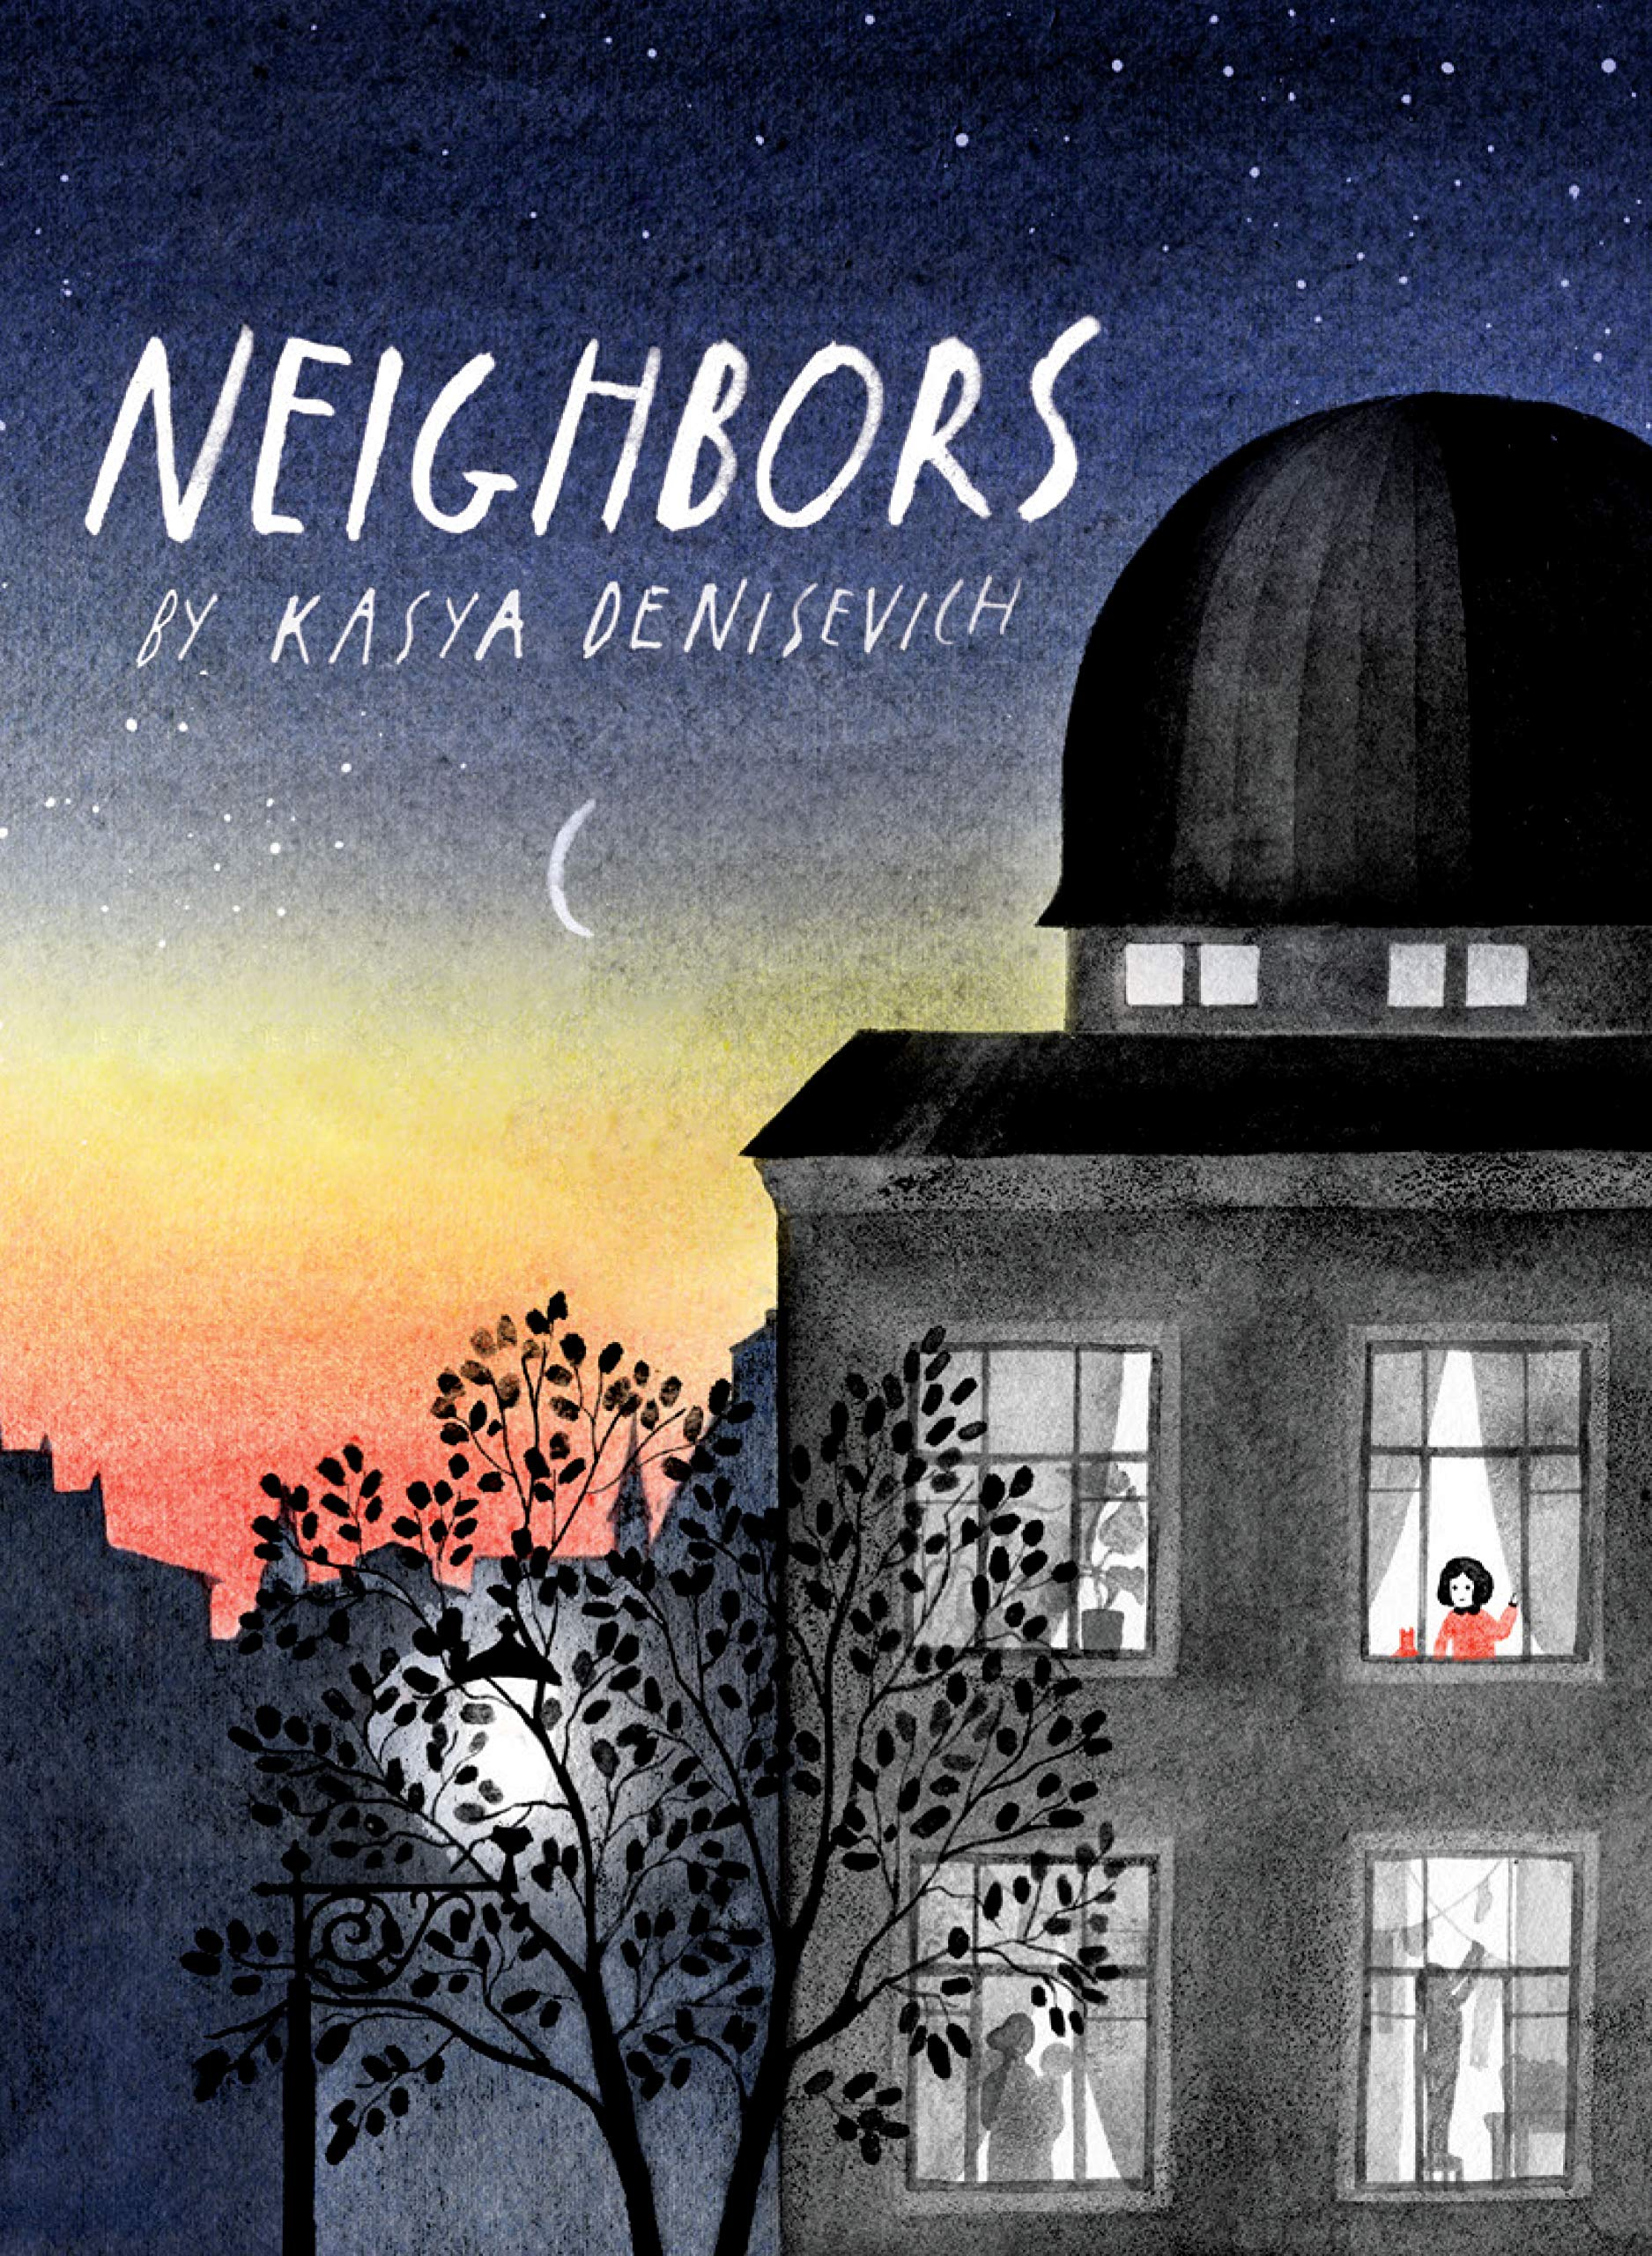 A picture book cover featuring a gray, domed apartment building against a dusky night sky dotted with stars. A girl in red stands in the building's topmost right window, looking out at the night.